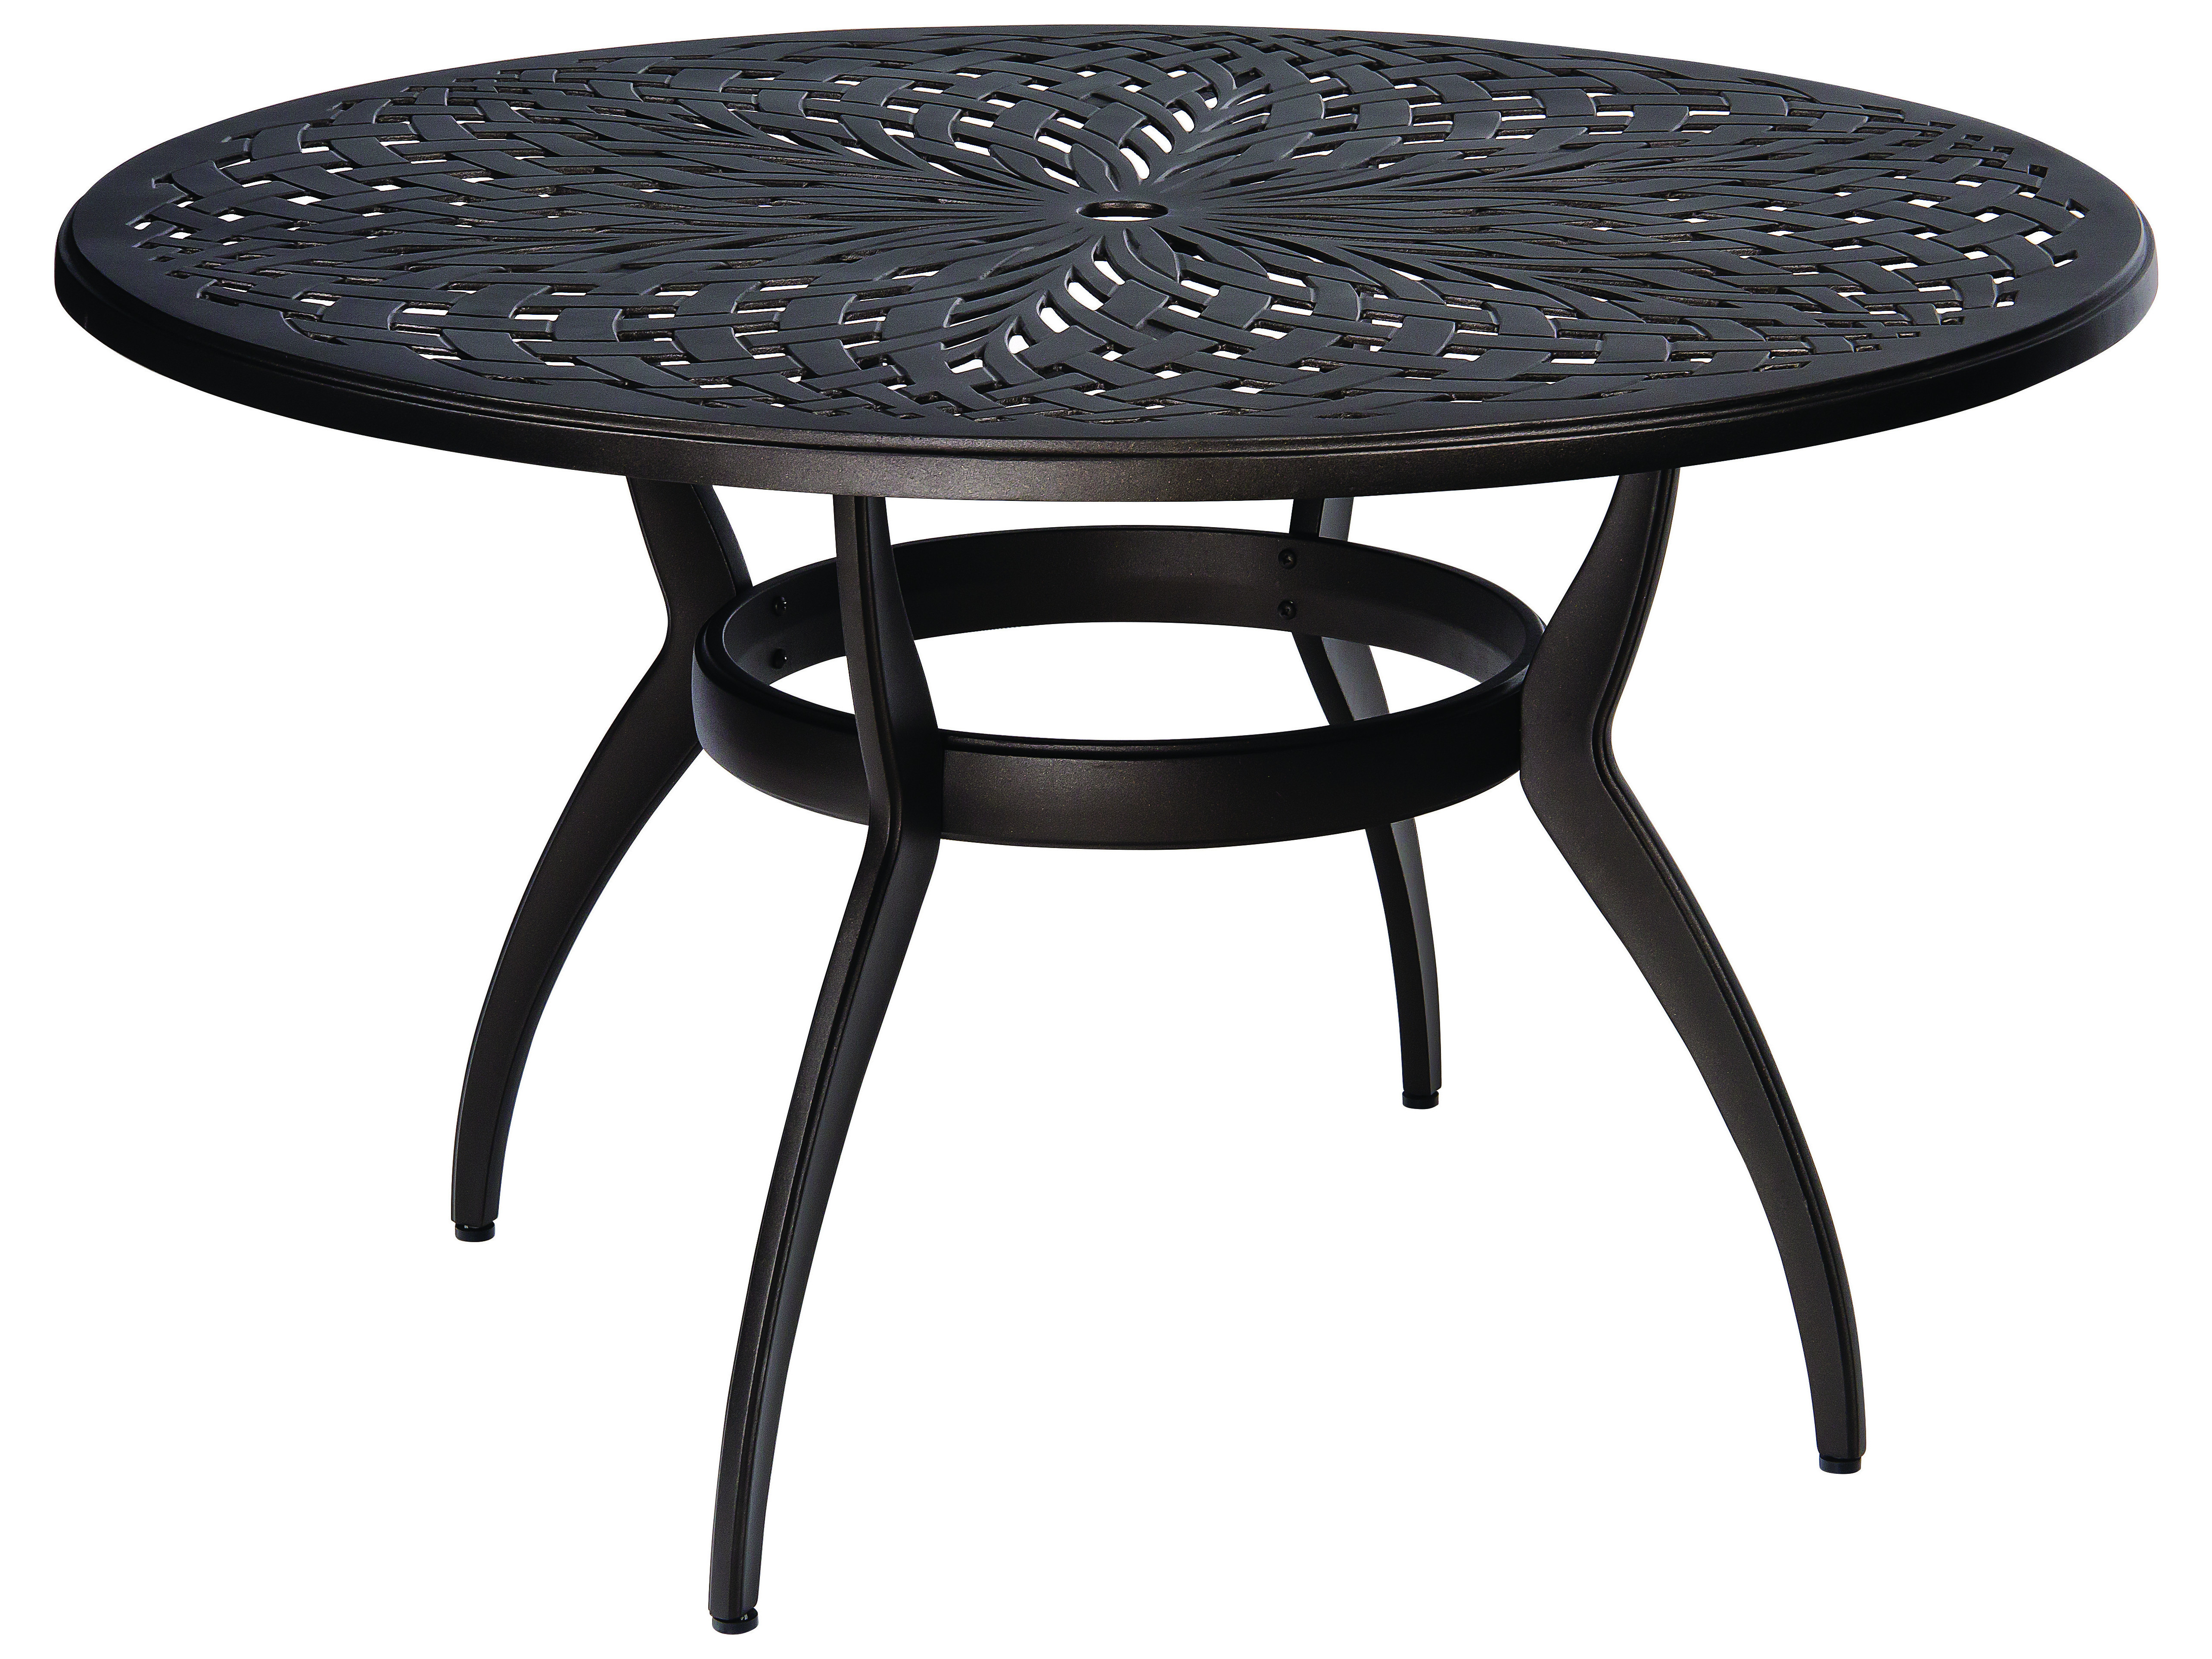 Best ideas about Round Patio Dining Table . Save or Pin Woodard Apollo Cast Aluminum 48 Round Dining Table with Now.